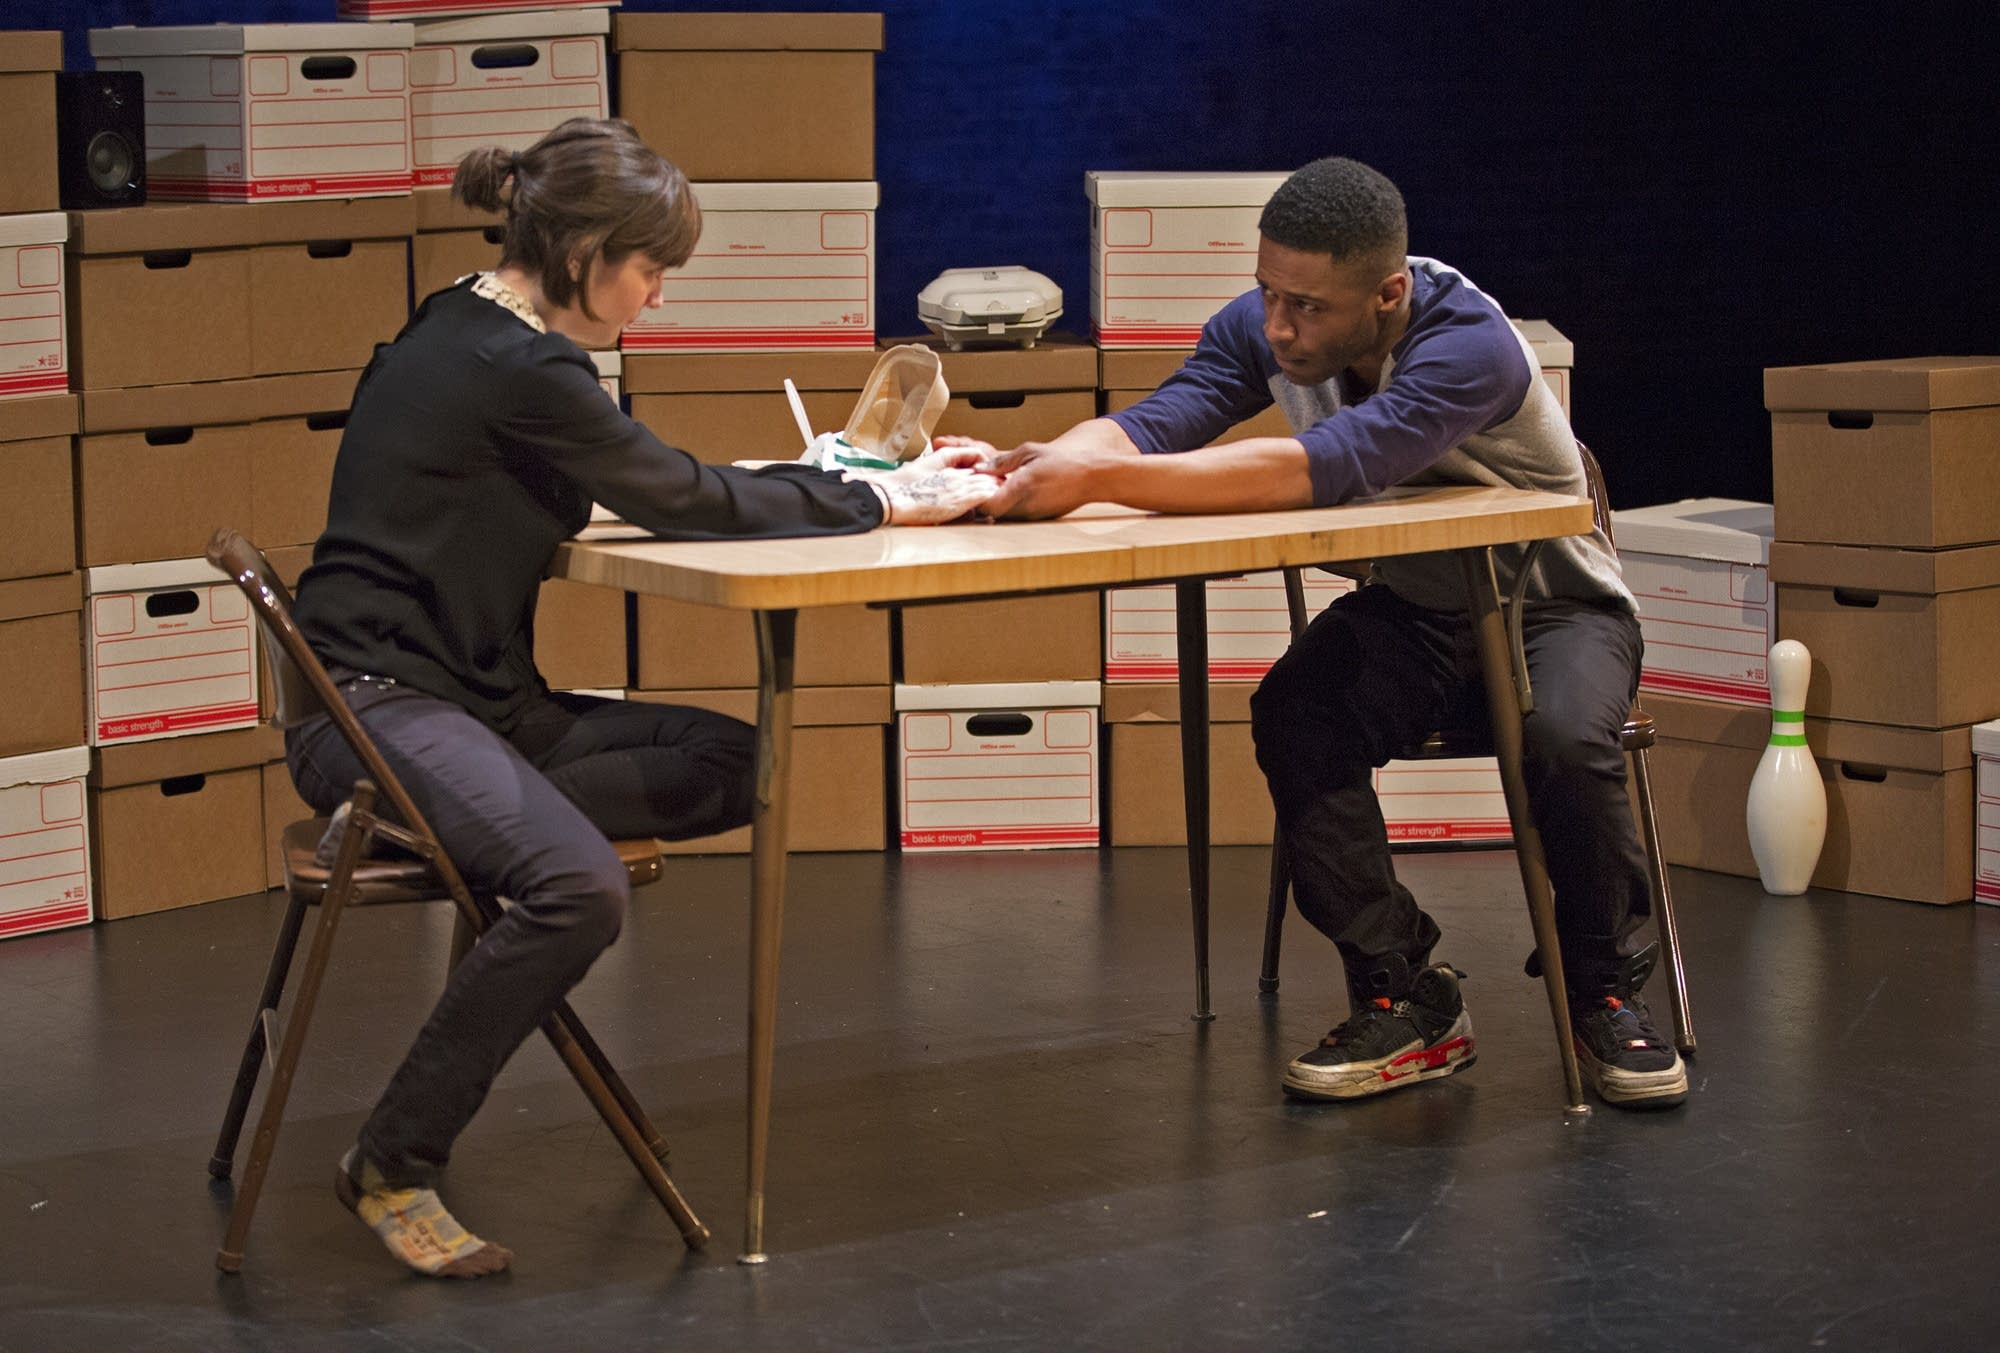 Brianna Patnode and Kory LaQuess Pullam rehearse a scene.